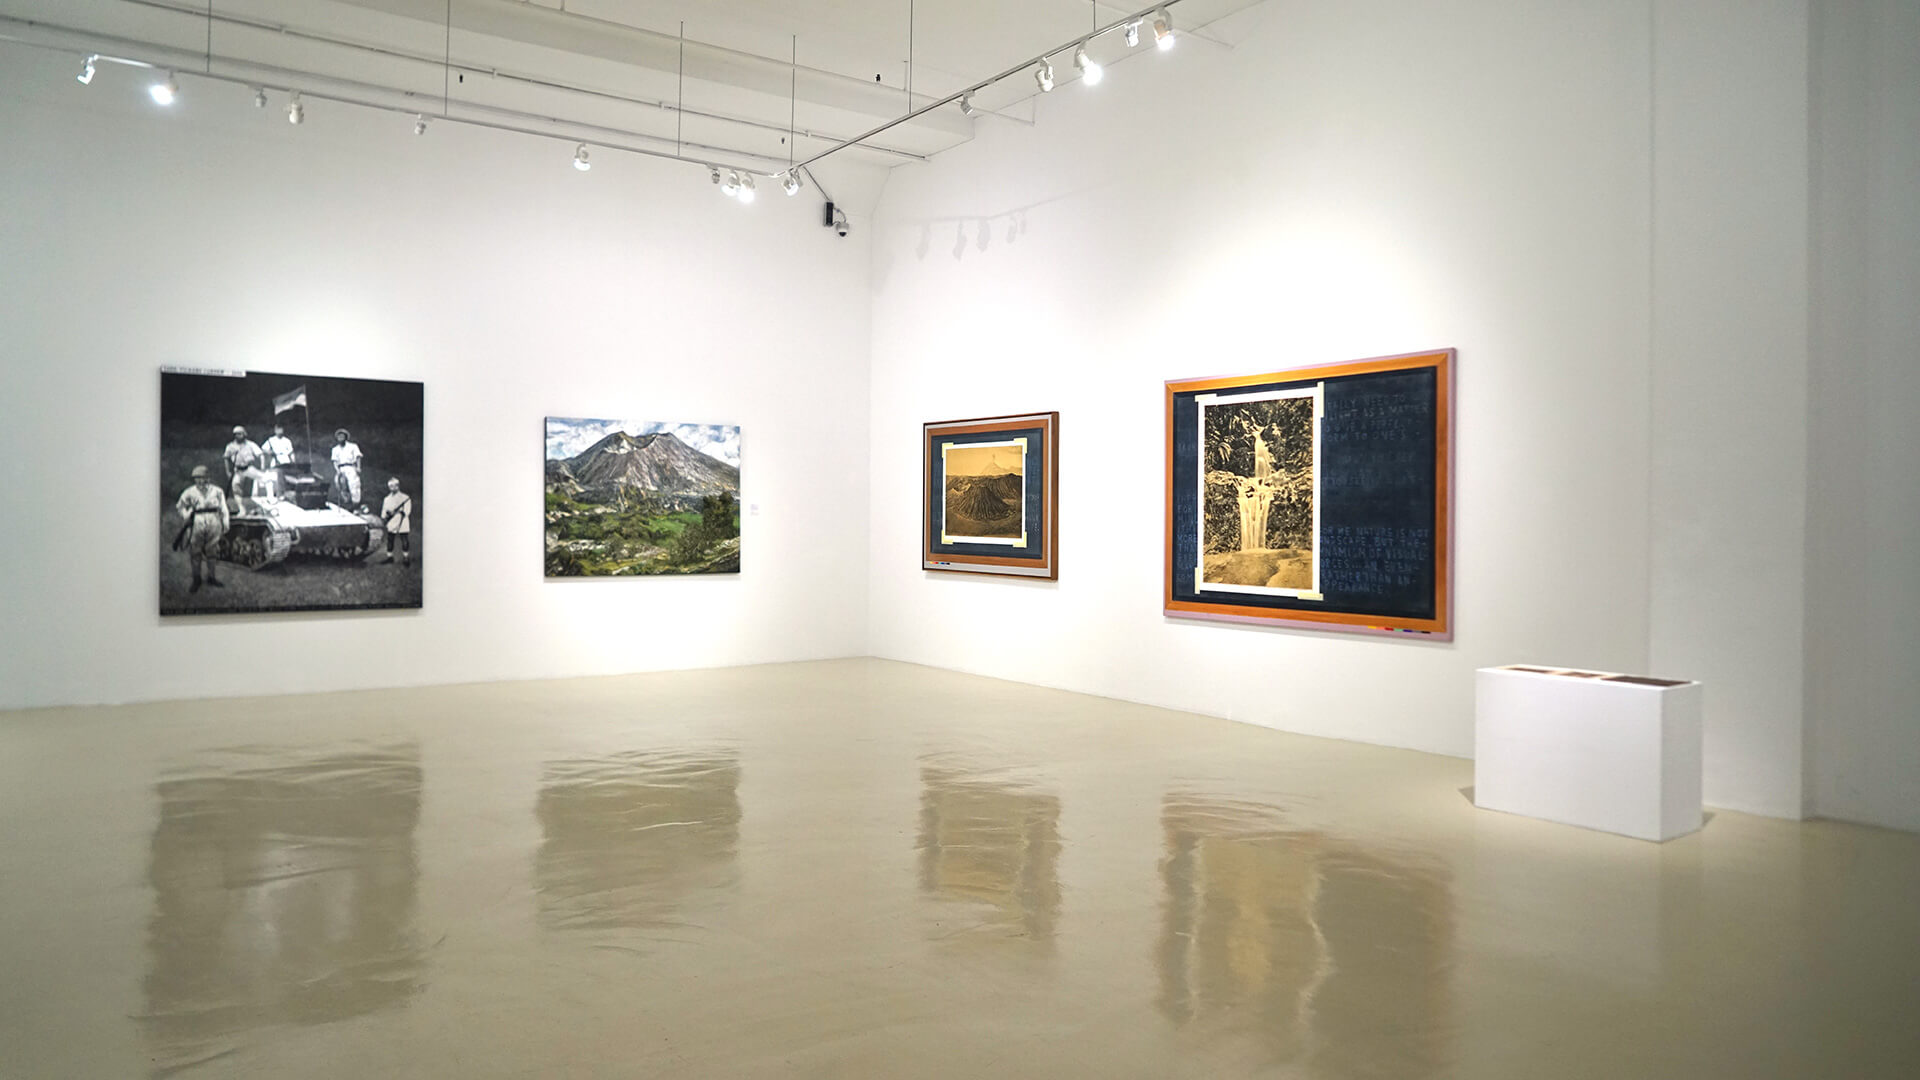 From left to right: 'Vickers Carden' (2014) and 'Mount Batur' (2020) by Mangu Putra and 'Re-Reading Landscape, Color Guide #1' (2020)) and 'Re-Reading Landscape, Color Guide #2' (2020) by Jumladi Alfi | (Re)Imagining the Image: Contemporary Artists in Asia Converse with Photography | Mangu Putra and Jumladi Alfi | STIRworld